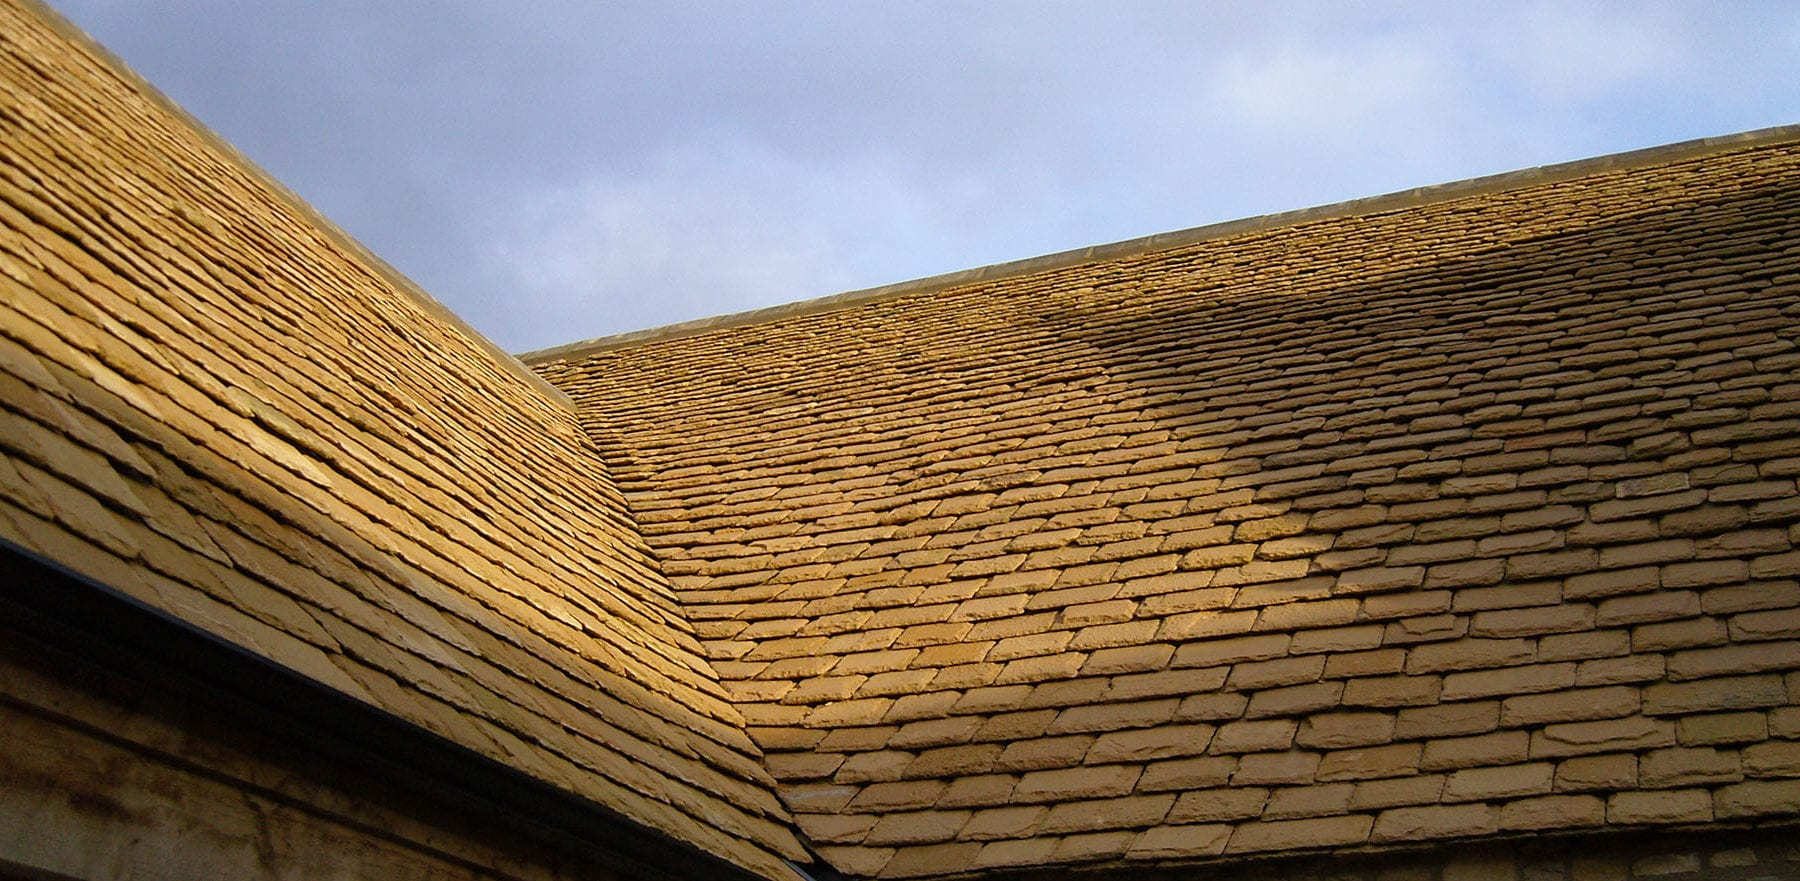 Lifestiles - Natural Stone Roof Tiles - The Stables, England 4